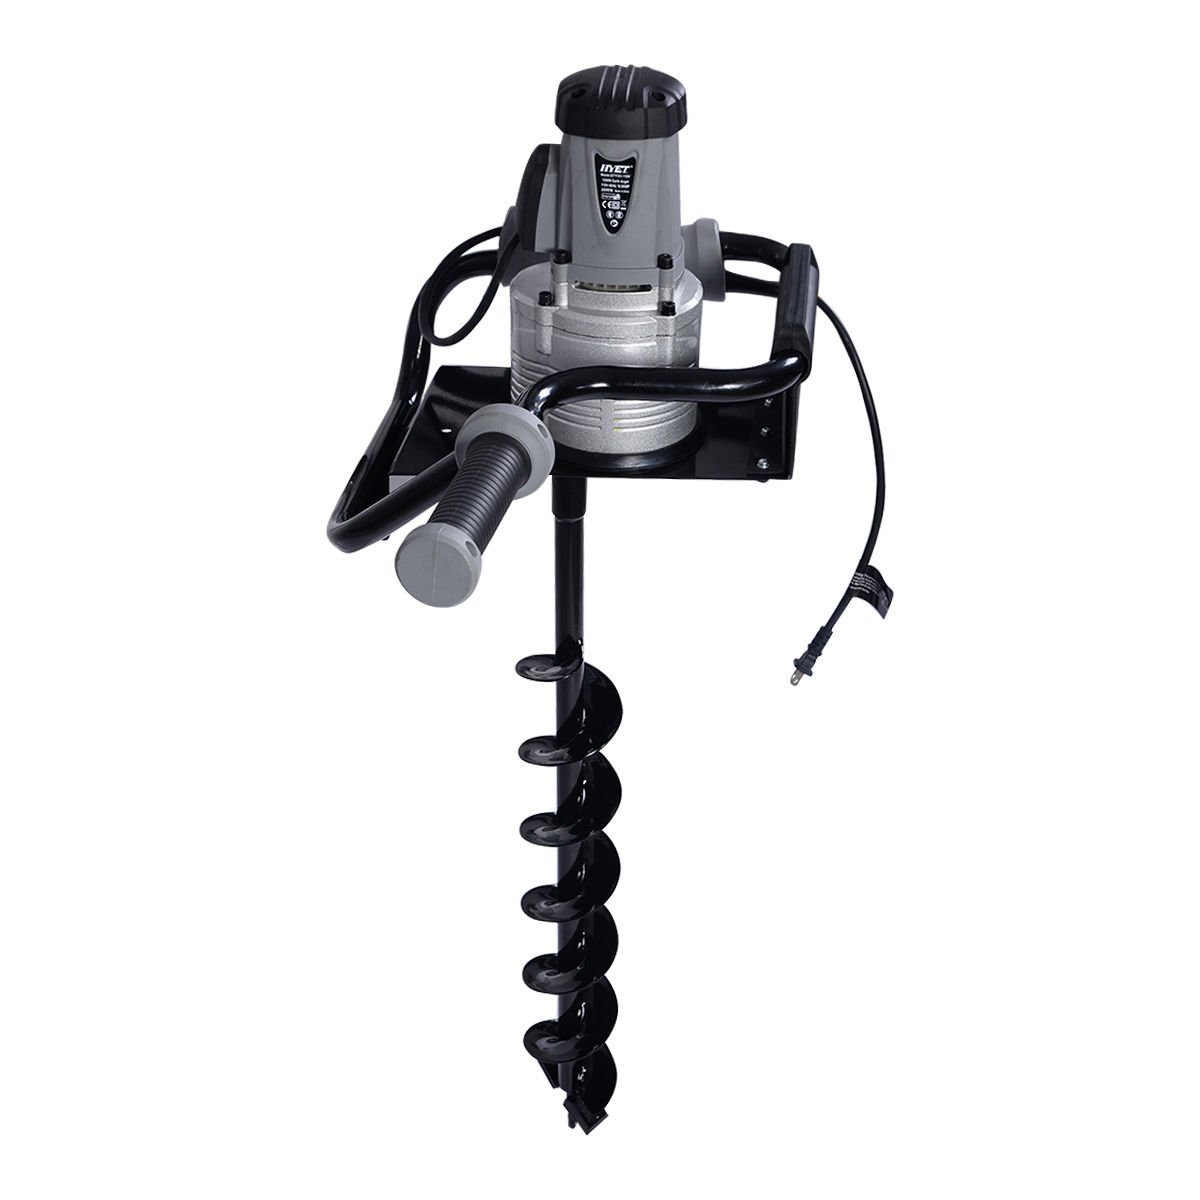 Goplus 1200W Electric 110V 1.6HP Post Hole Digger Earth Soil Ice w/ 4'' Auger Bit